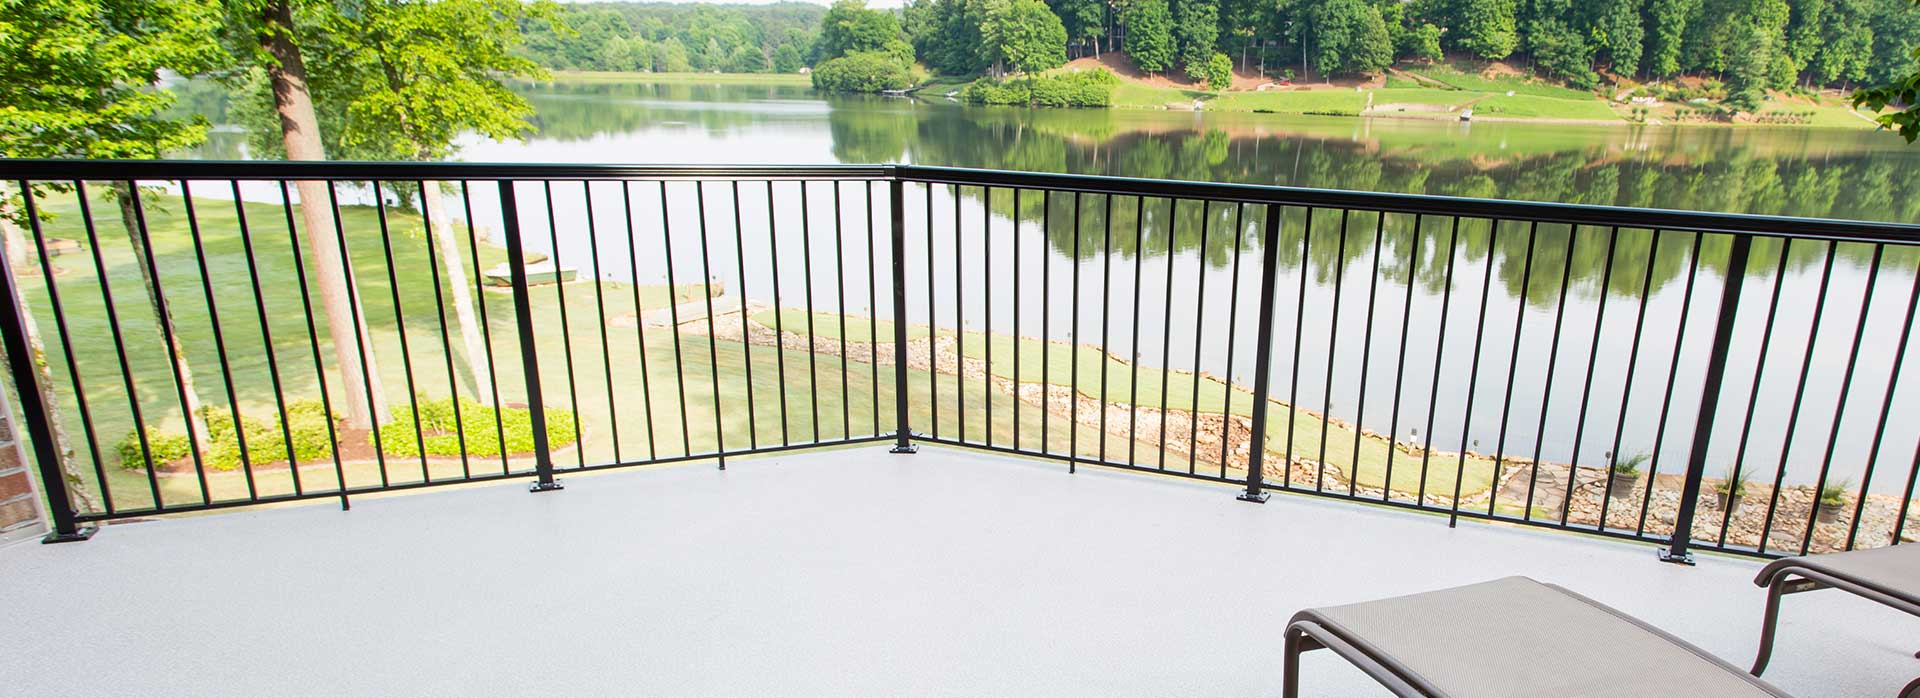 Aluminum Deck Railing System Options - Picket, Glass, Topless Glass ...